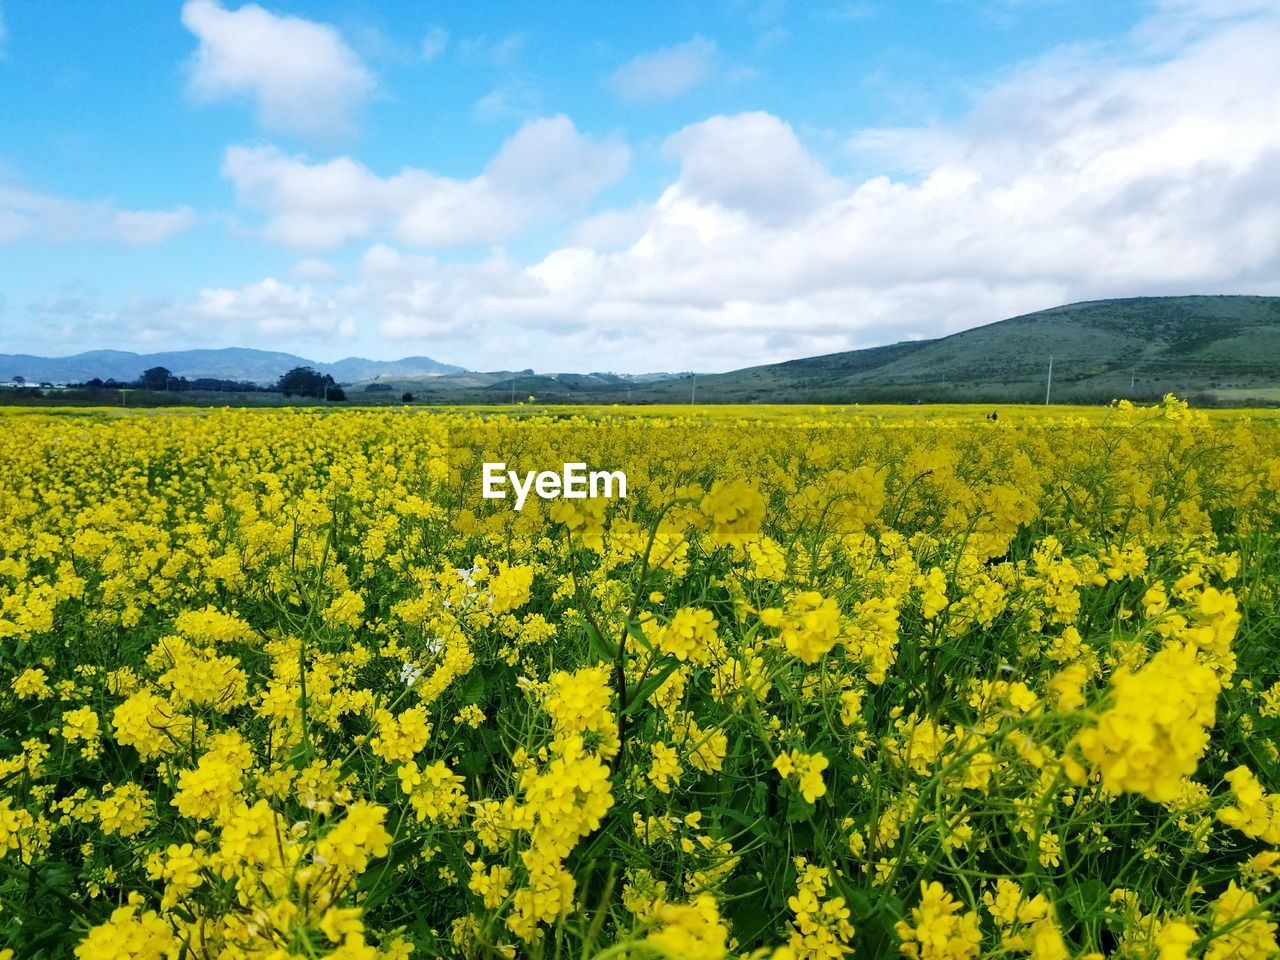 yellow, agriculture, oilseed rape, nature, beauty in nature, flower, field, tranquility, rural scene, crop, farm, tranquil scene, cultivated land, landscape, mustard plant, scenics, growth, sky, day, no people, cultivated, springtime, cloud - sky, outdoors, plant, freshness, fragility